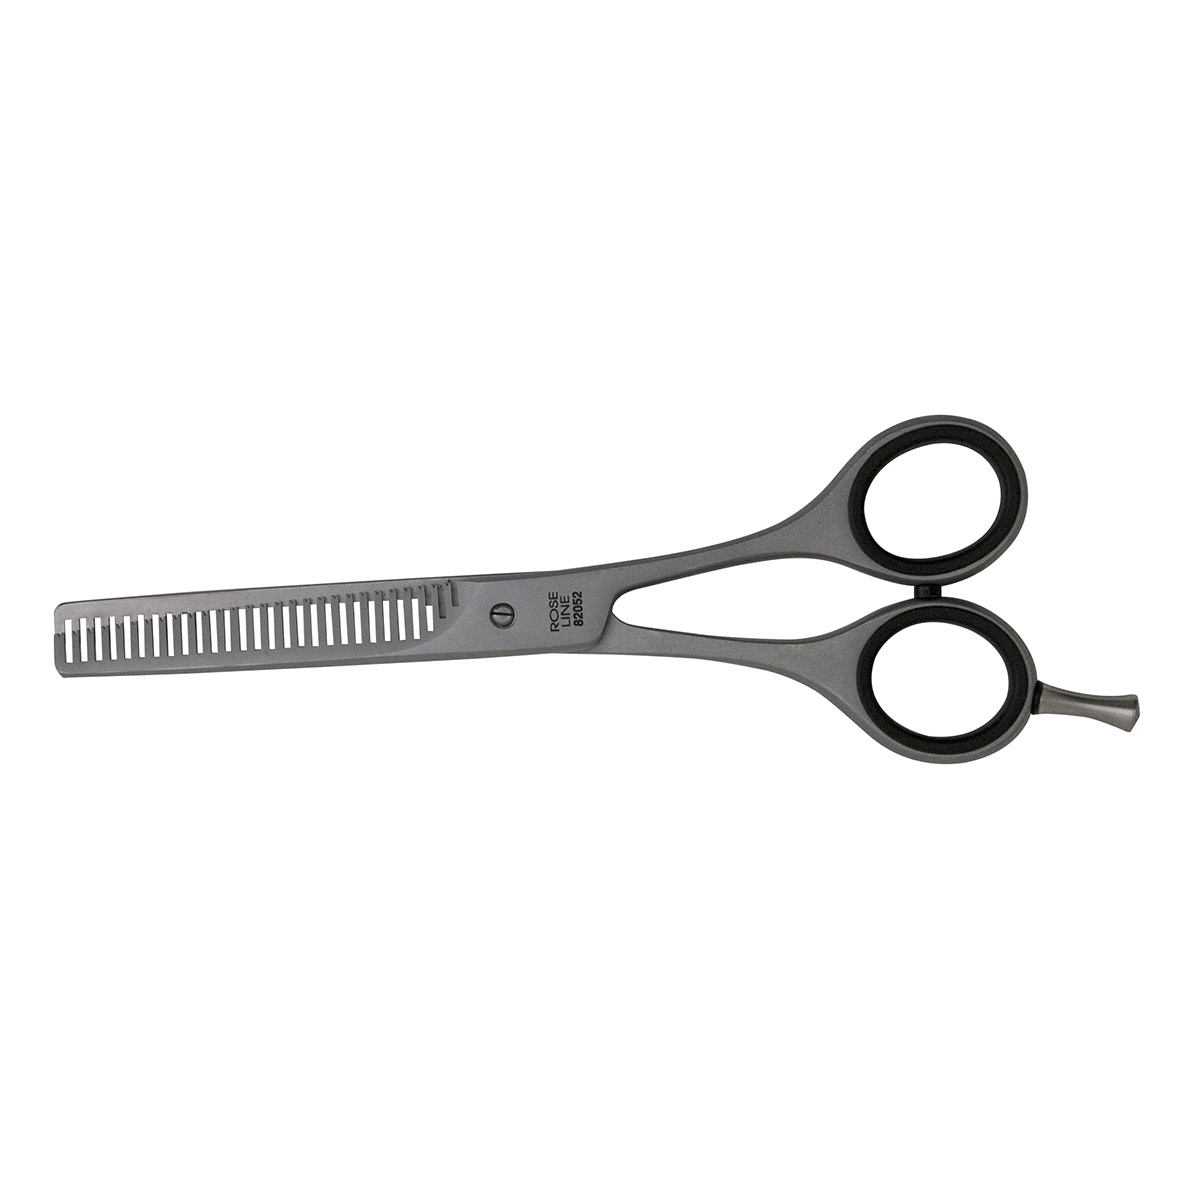 Rose Line 5.25 inch 28T Double Edge Thinner Grooming Shear